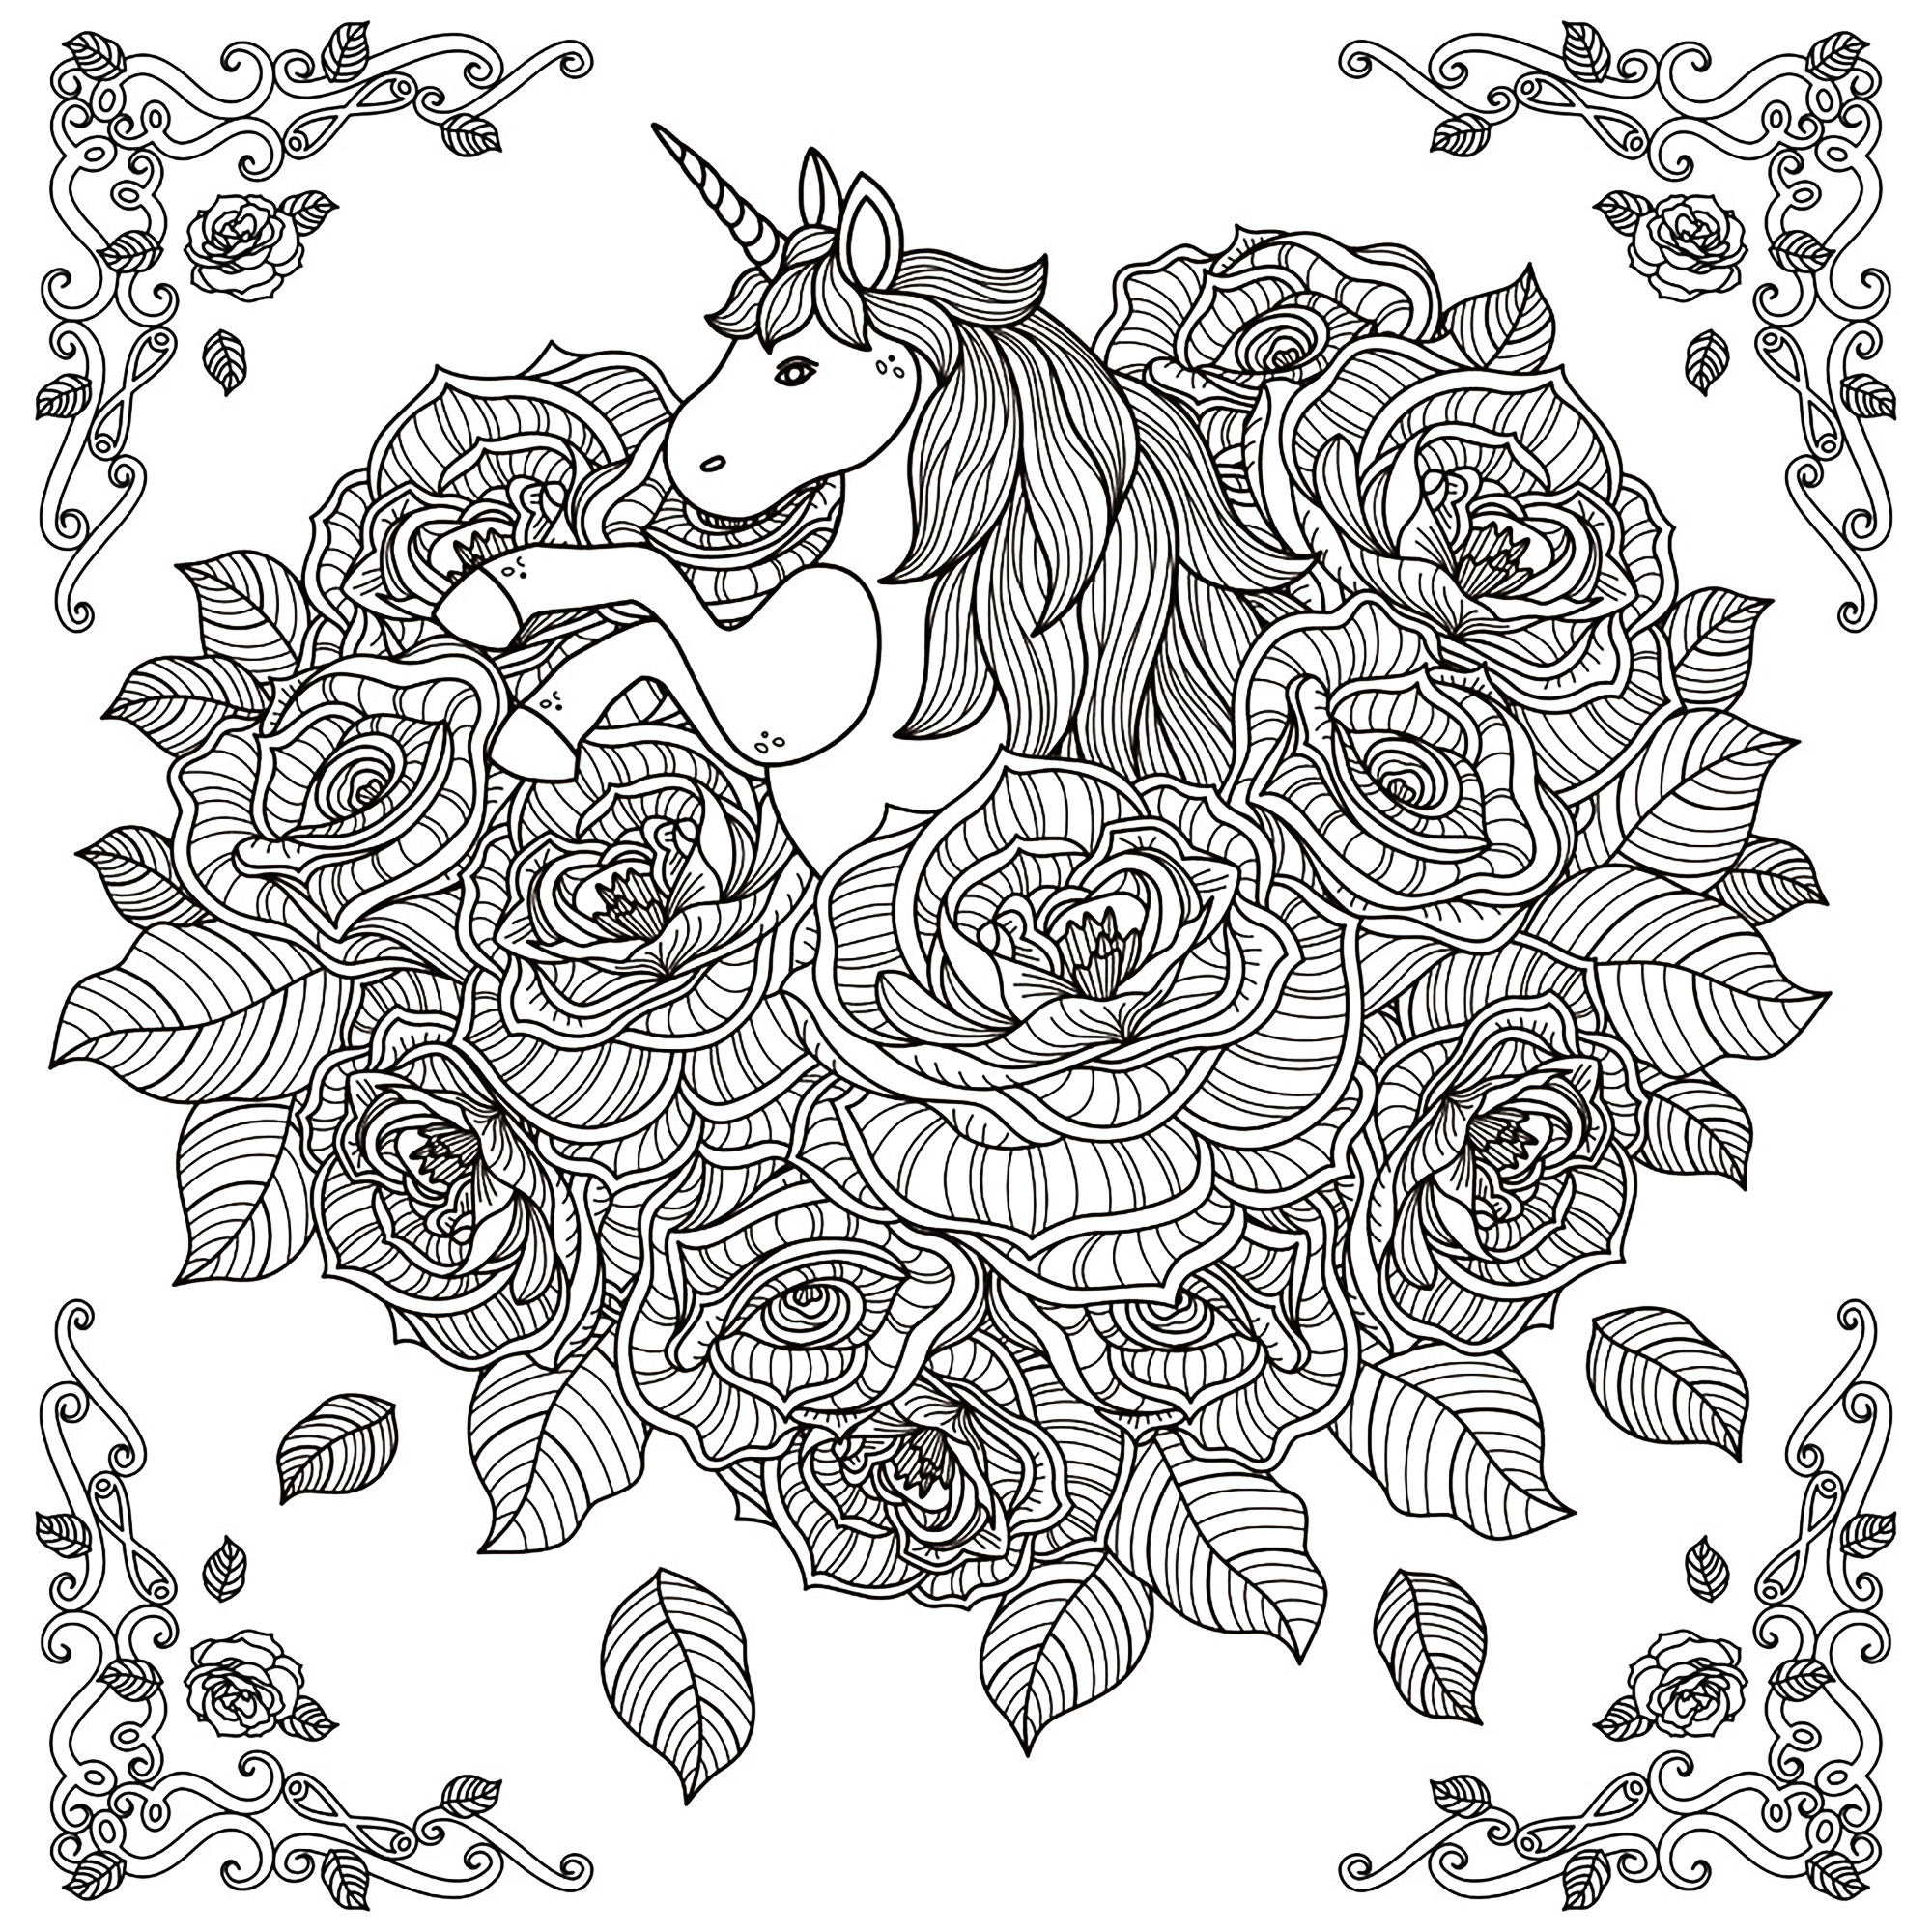 Coloring Pages For Adults: Unicorns Adult Coloring Pages